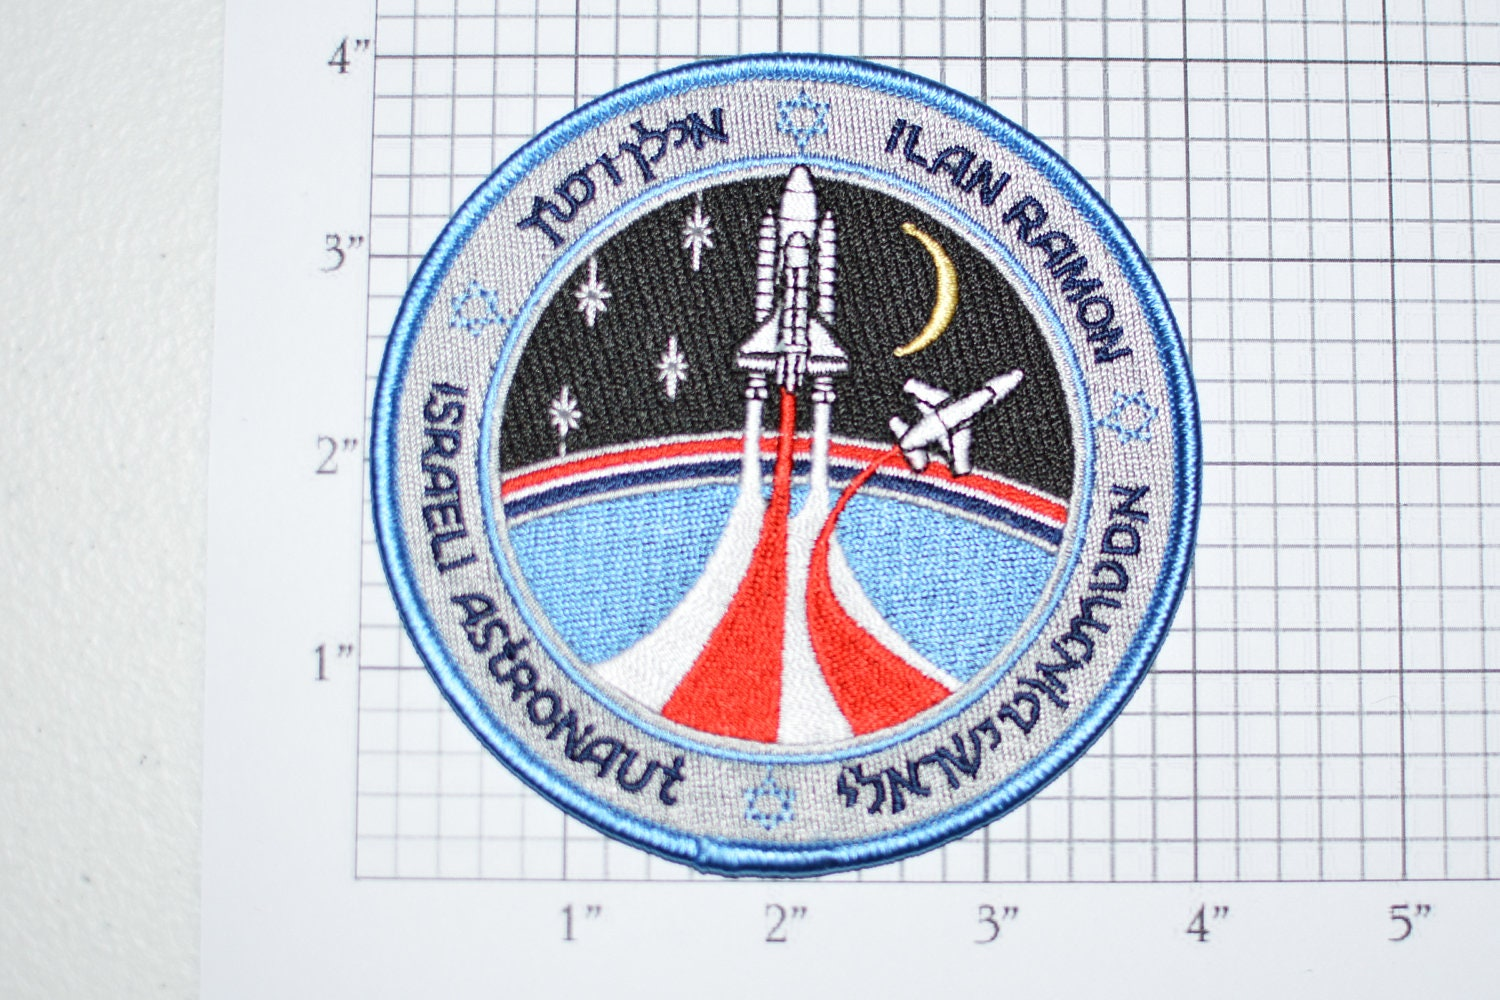 space shuttle columbia mission patch - photo #41